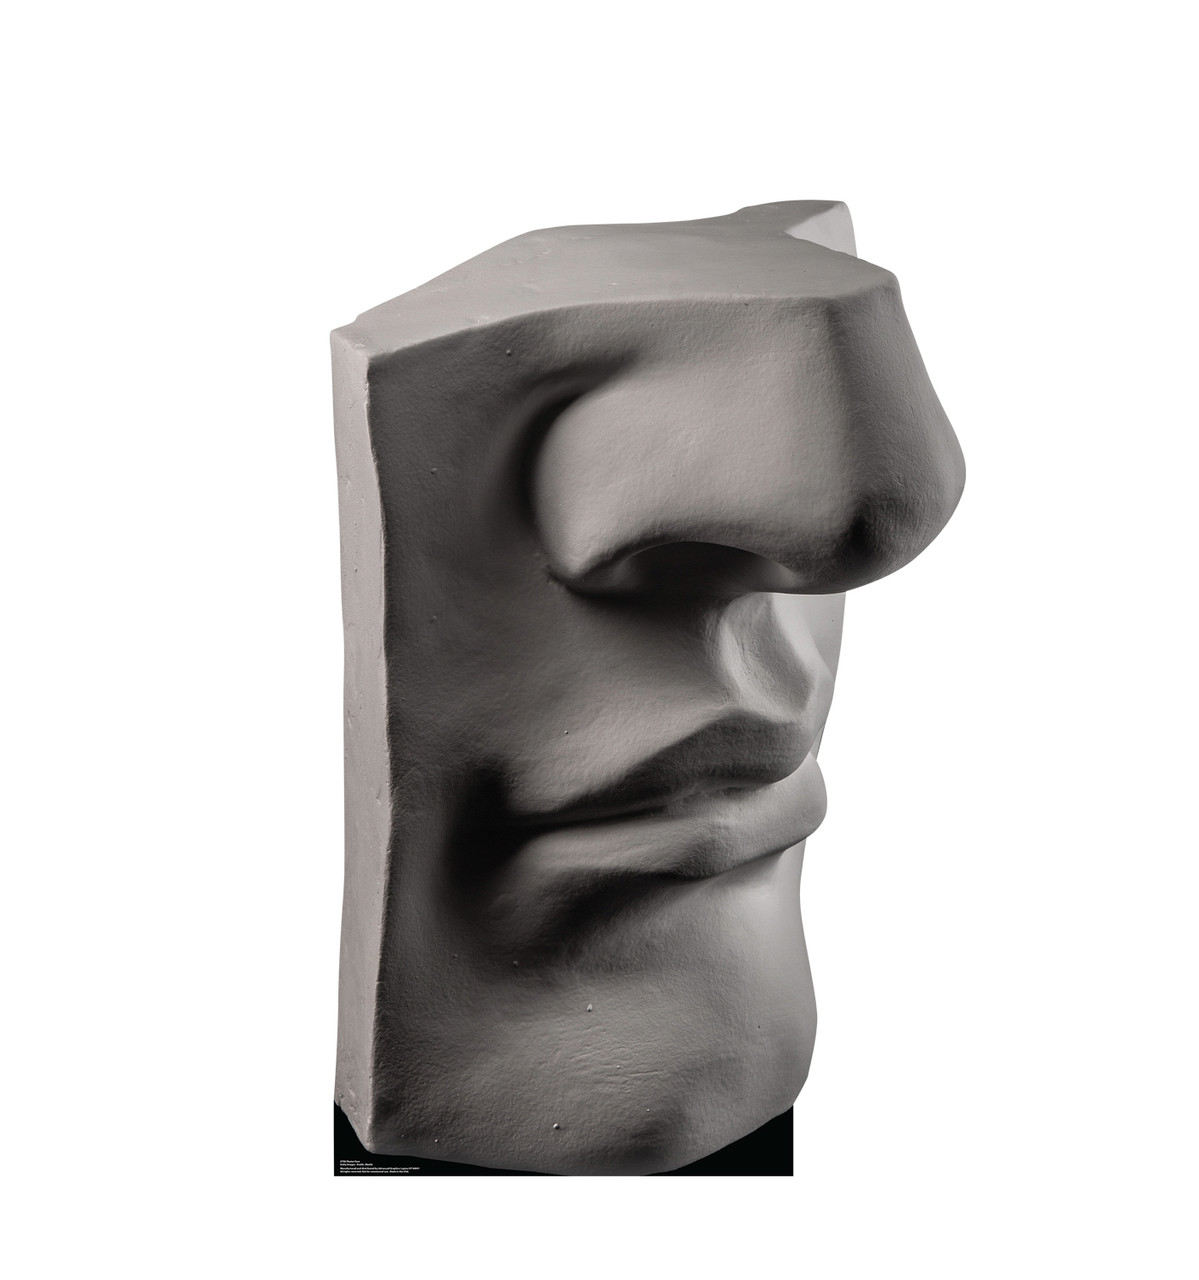 Life-size cardboard standee of a Plaster Face.